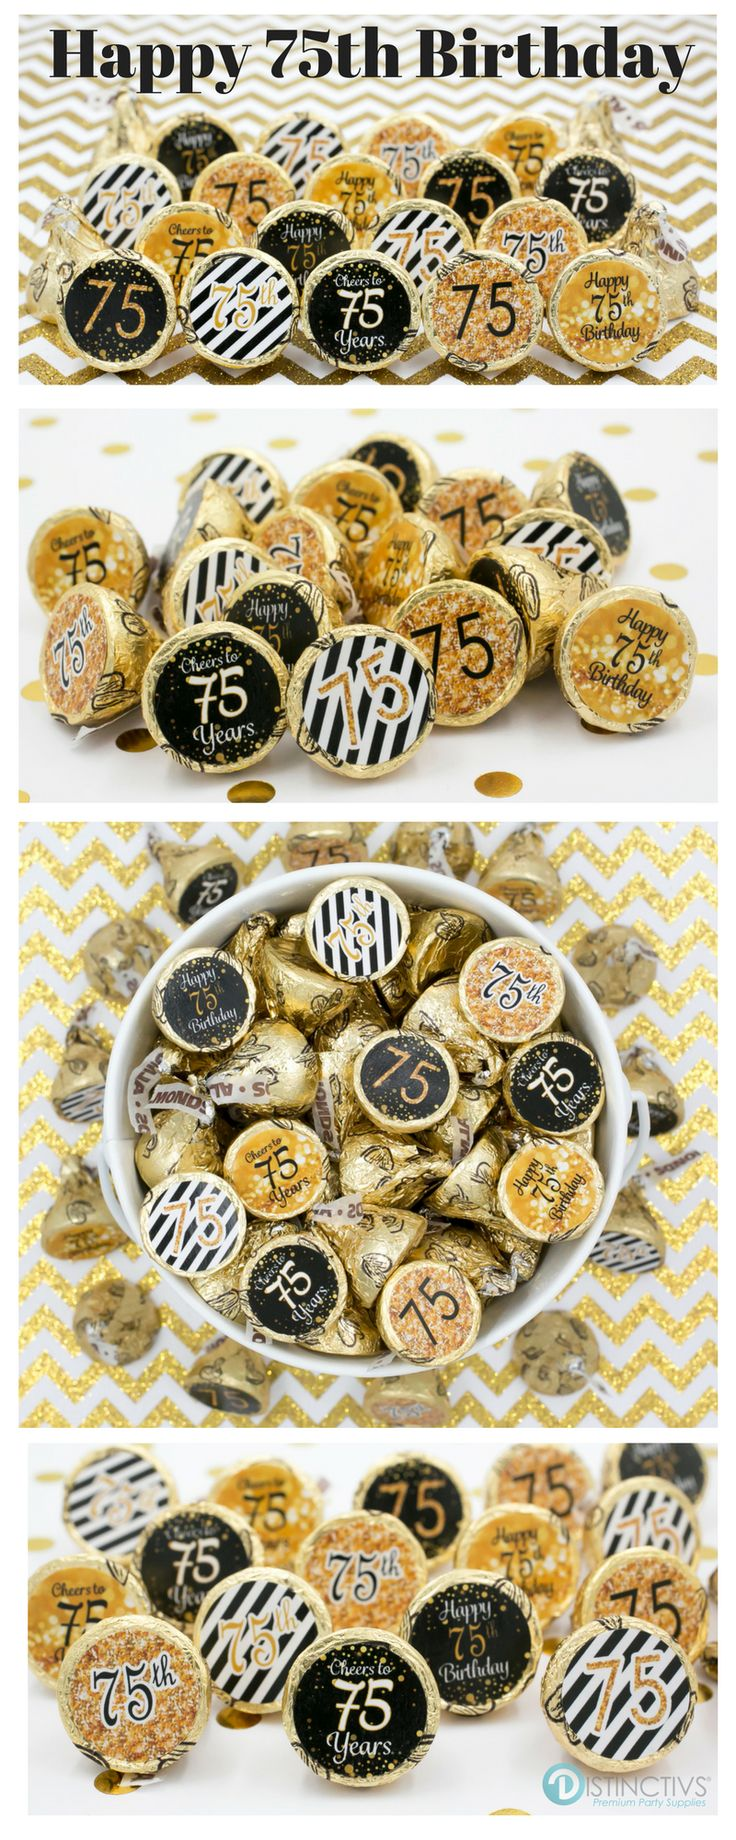 Celebrate this special birthday milestone with these gold and black 75th birthday party favor stickers that will be a sure hit at your party.